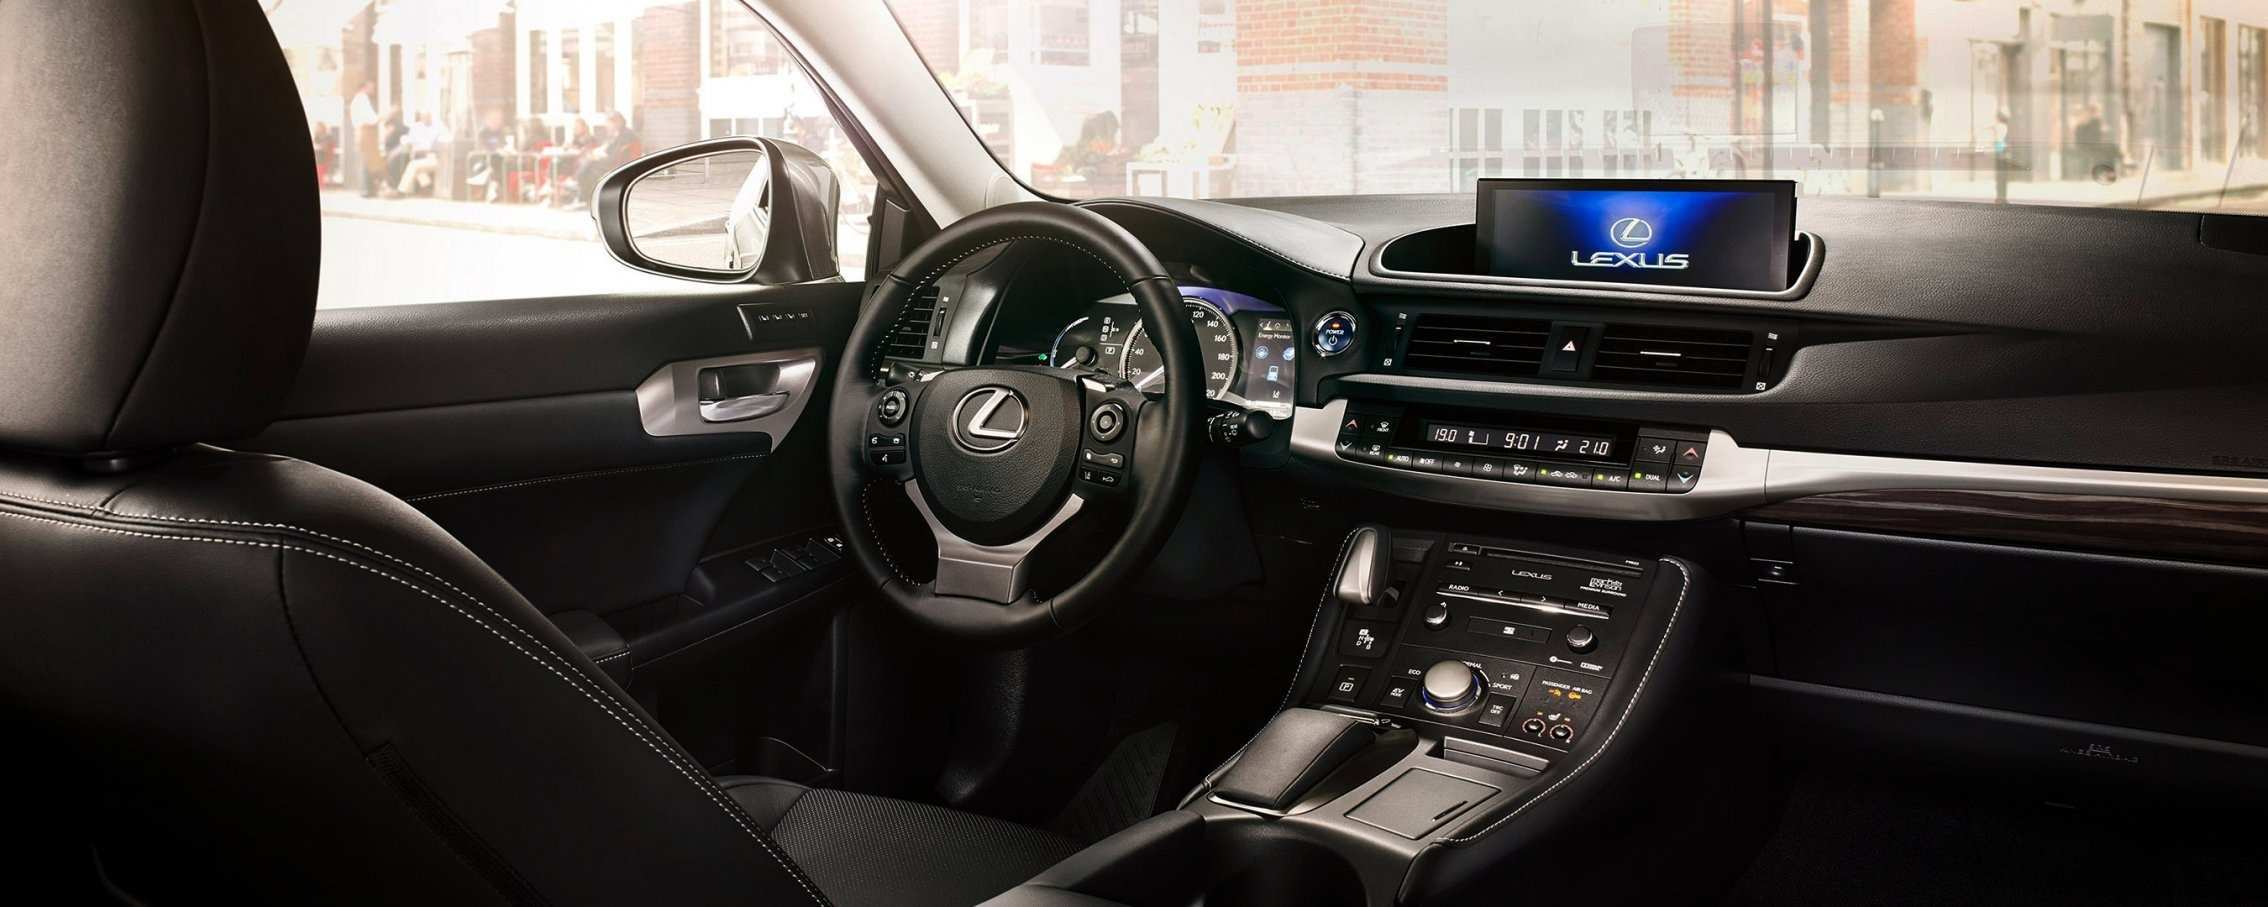 71 A 2020 Lexus CT 200h Redesign And Concept